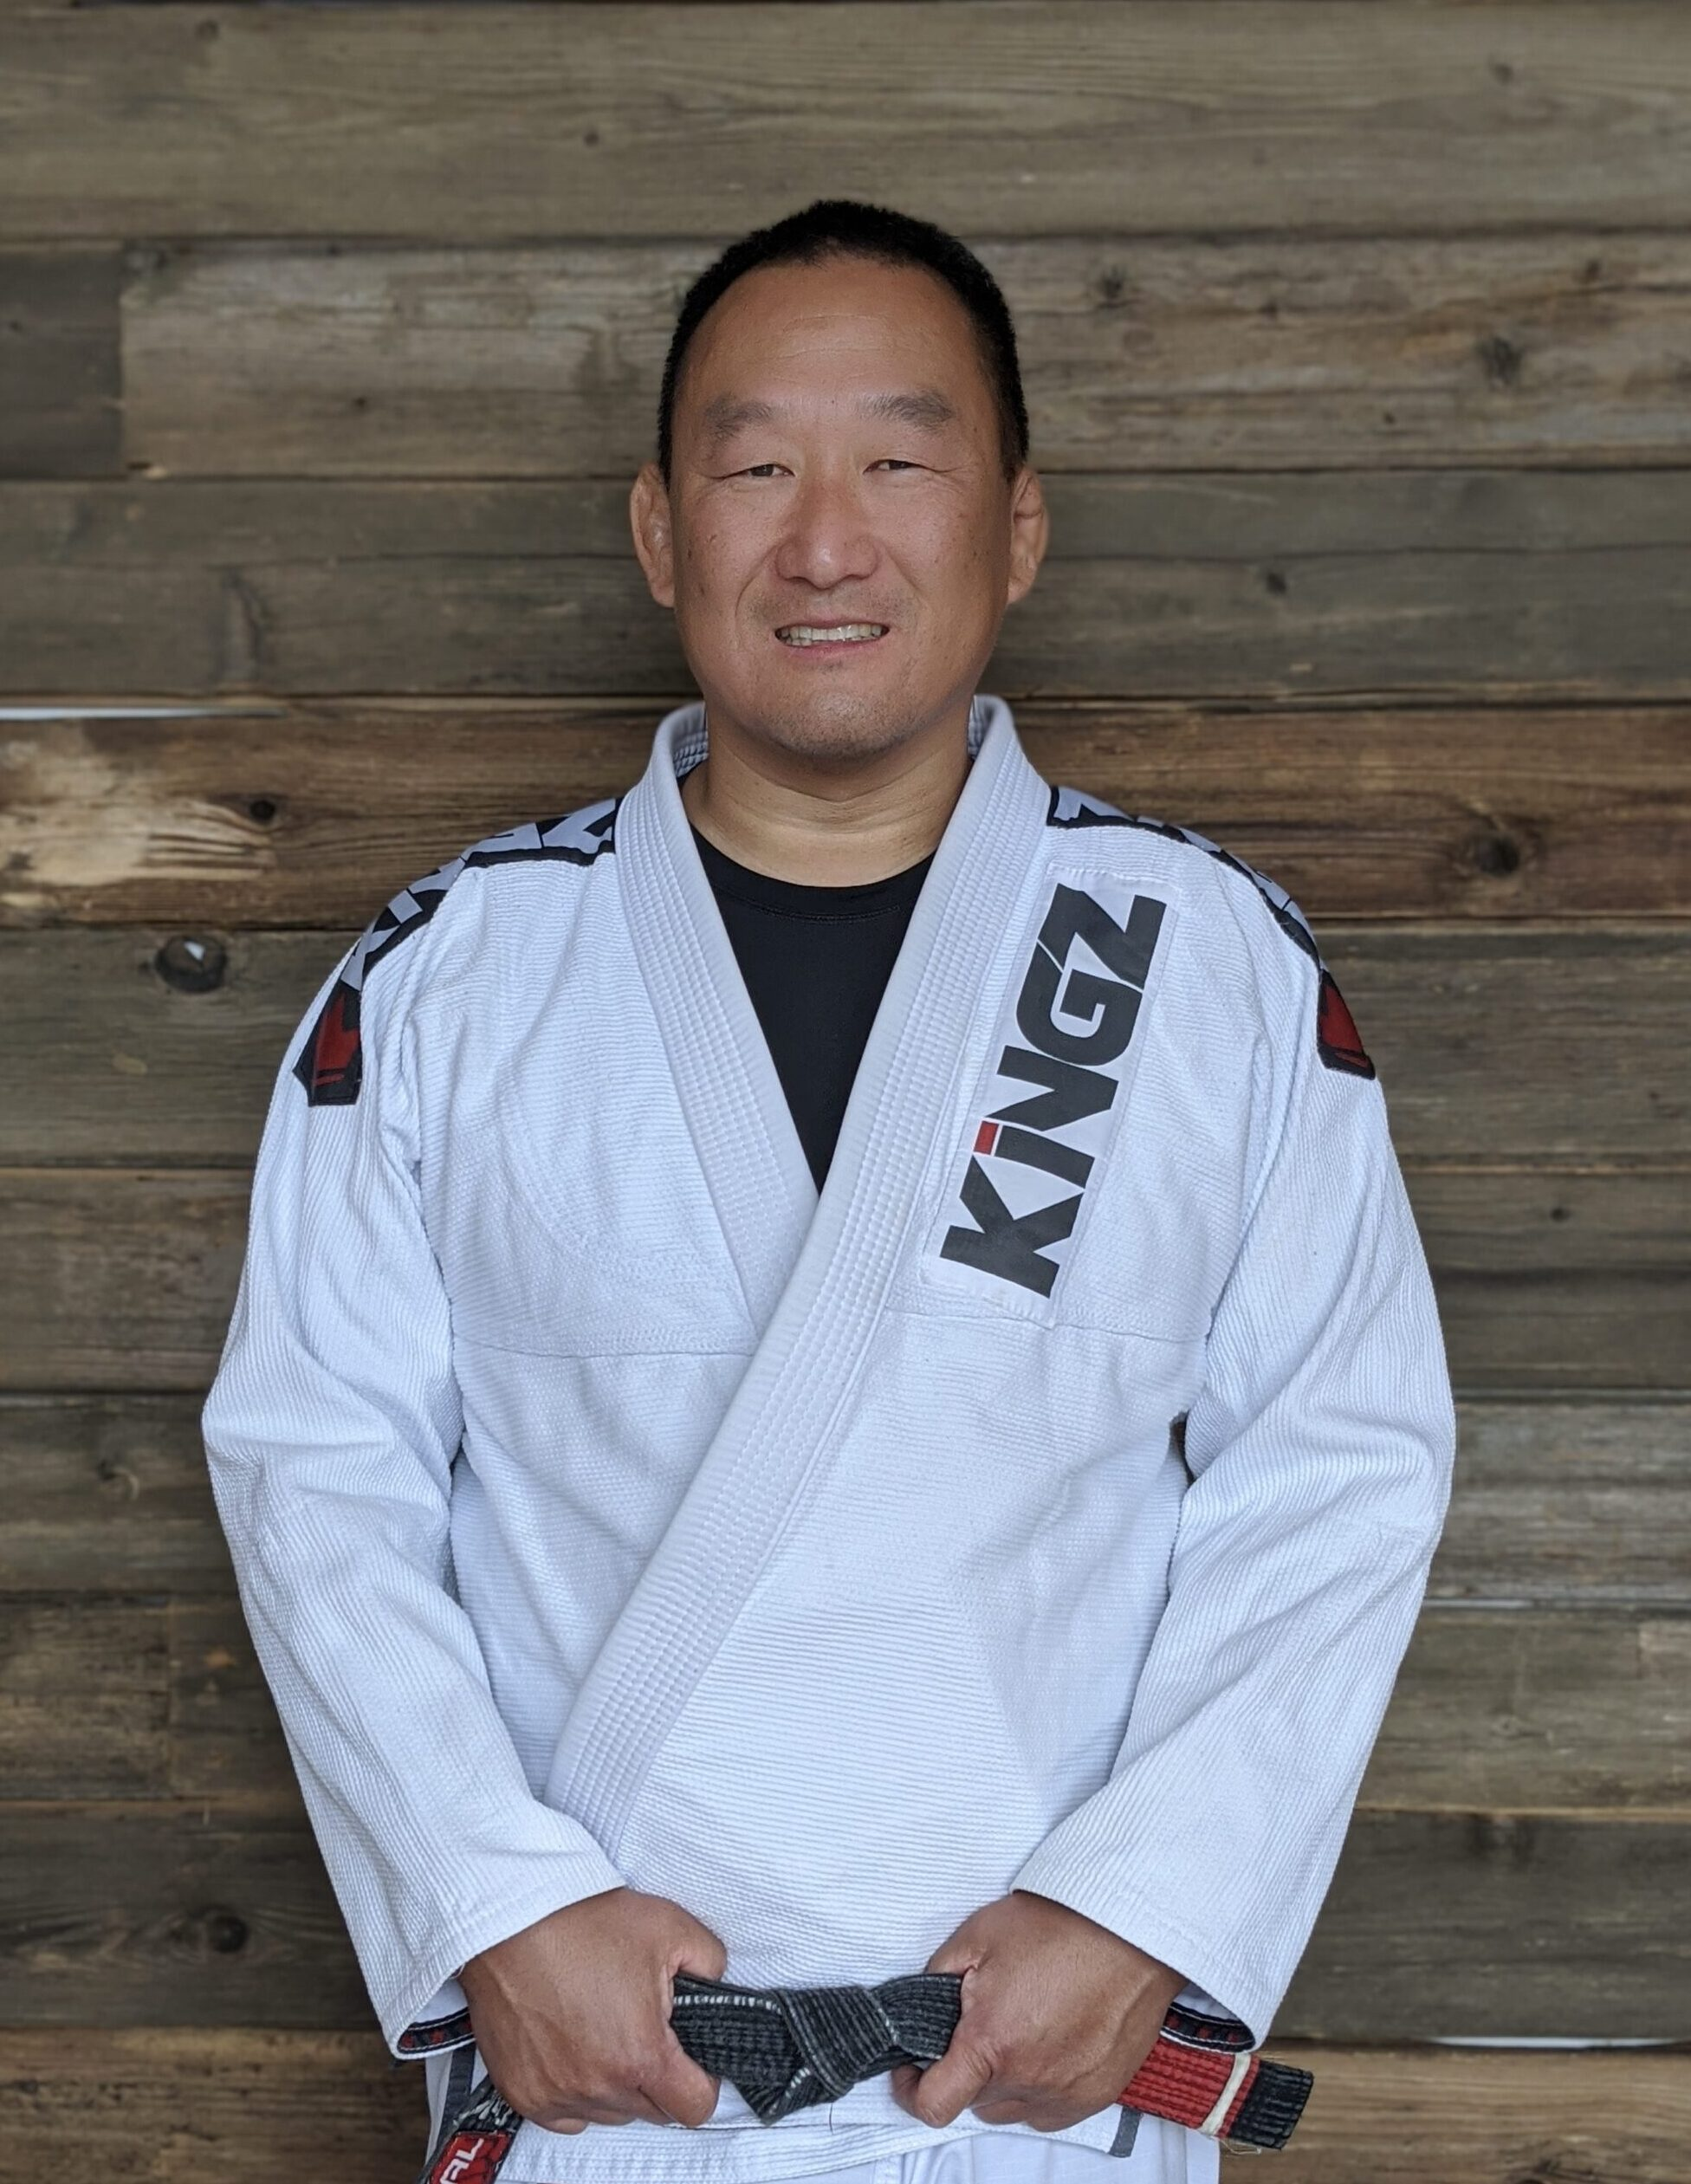 Professor Mike posing for a picture in a white Jiu-Jitsu gi with his black belt on in Blaine MN